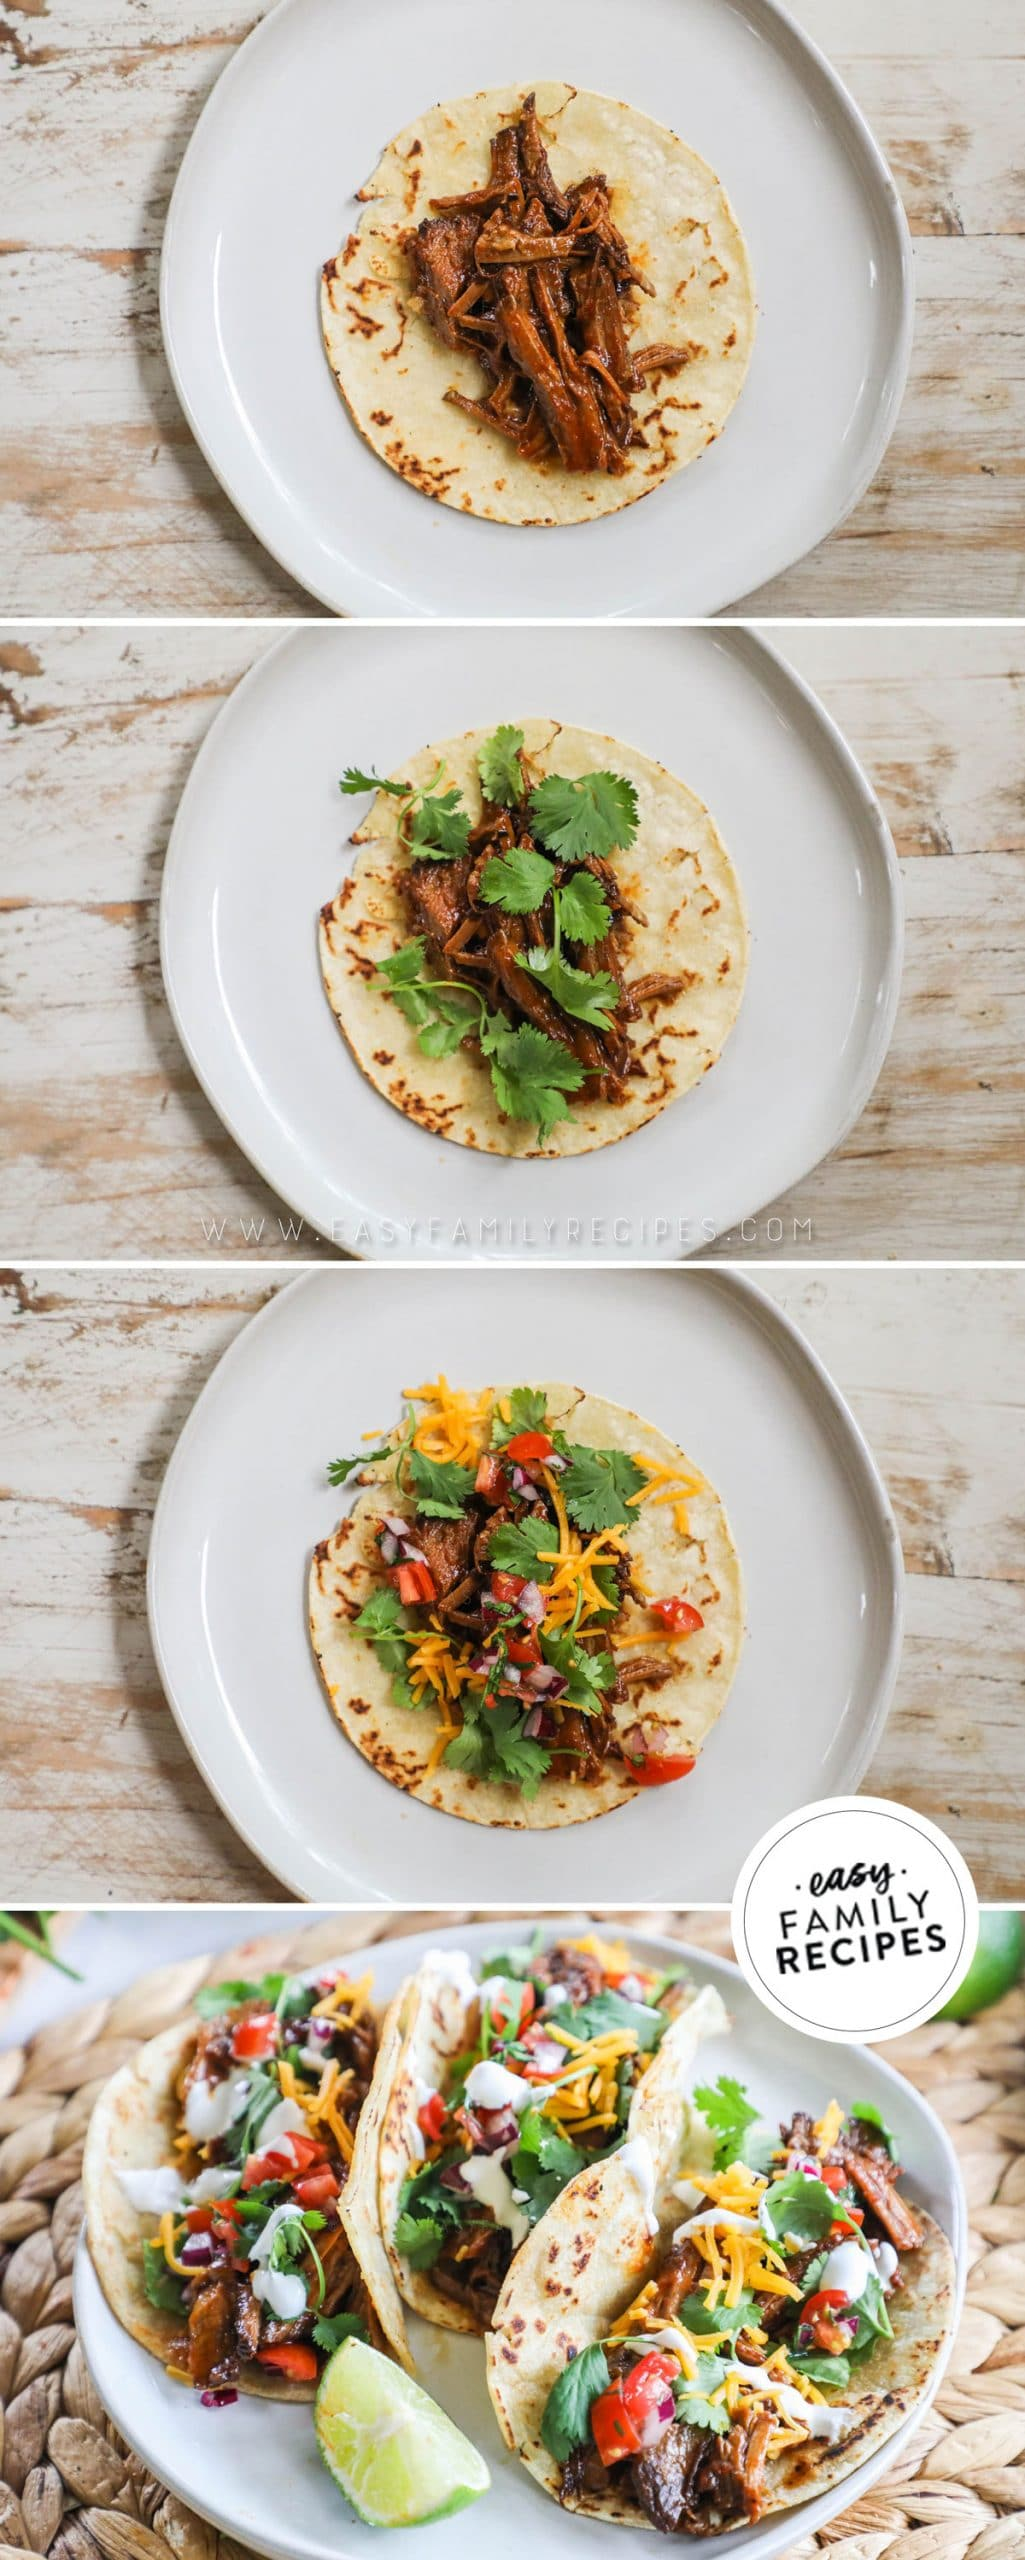 Process photos for how to make BBQ Brisket Tacos: 1. Toast tortillas in  oil and add Brisket. 2. Top taco with cilantro. 3. Finish with pico de gallo, cheese, and sour cream. 4. Fold brisket tacos and serve with lime wedges.